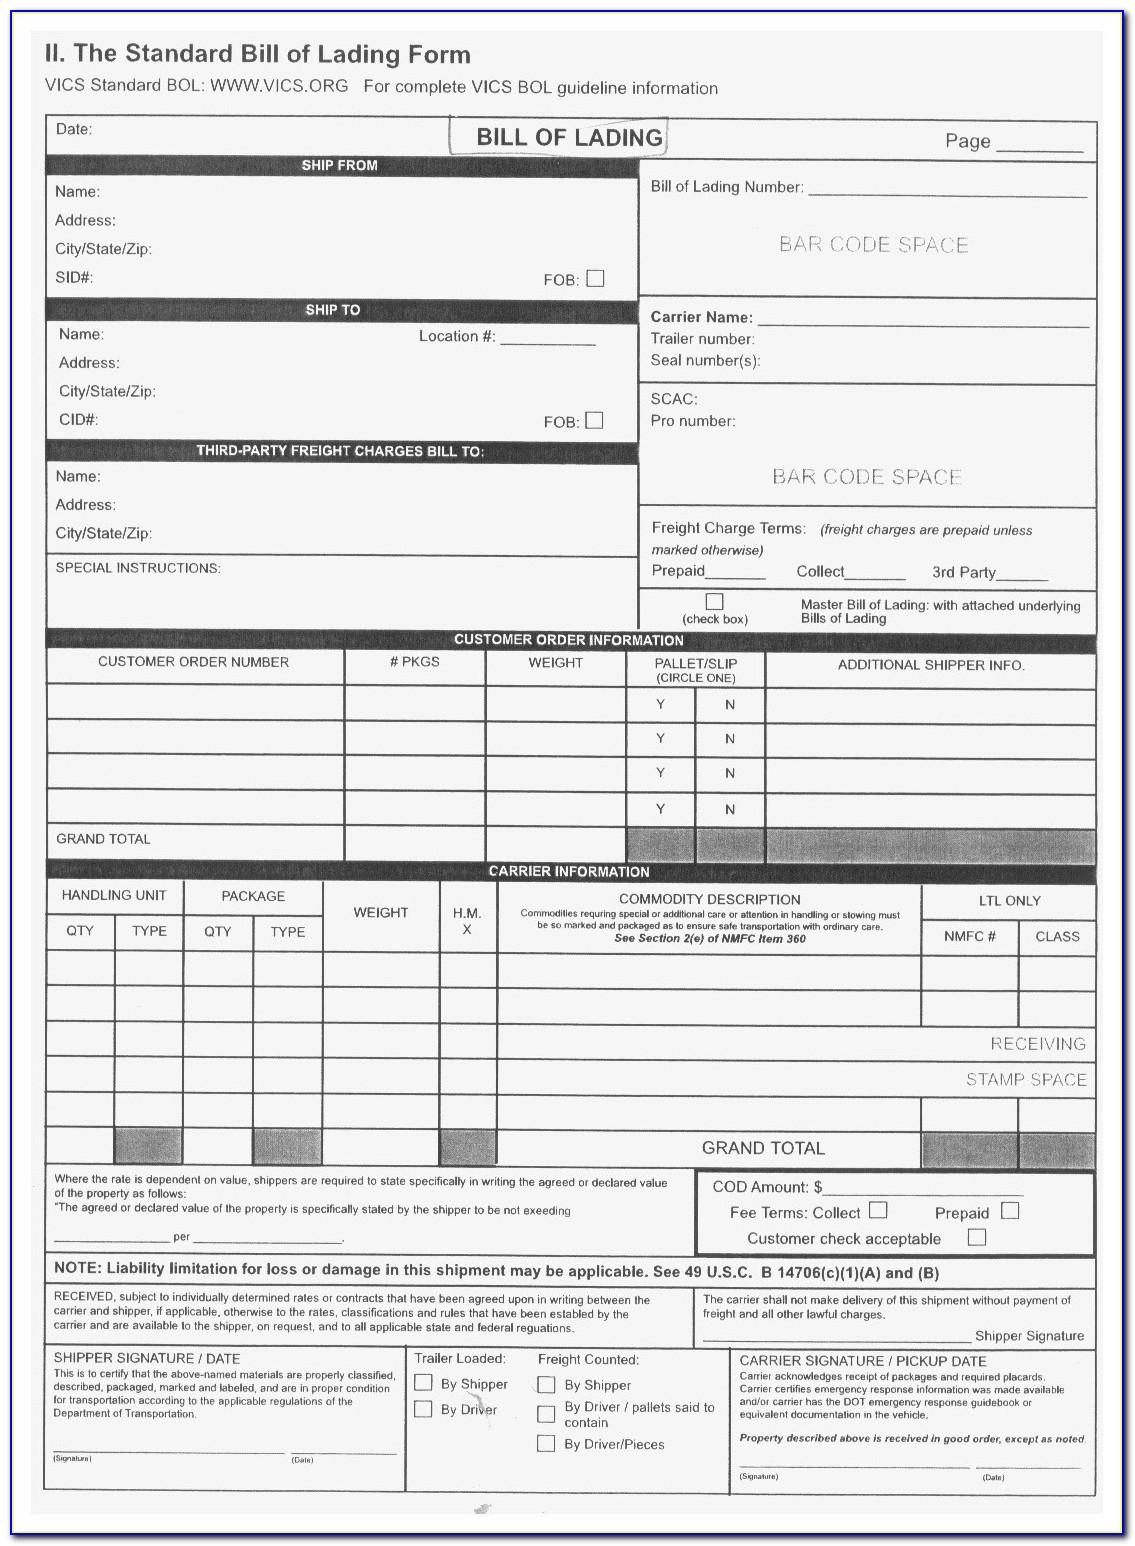 Fedex Freight Bill Of Lading Sample